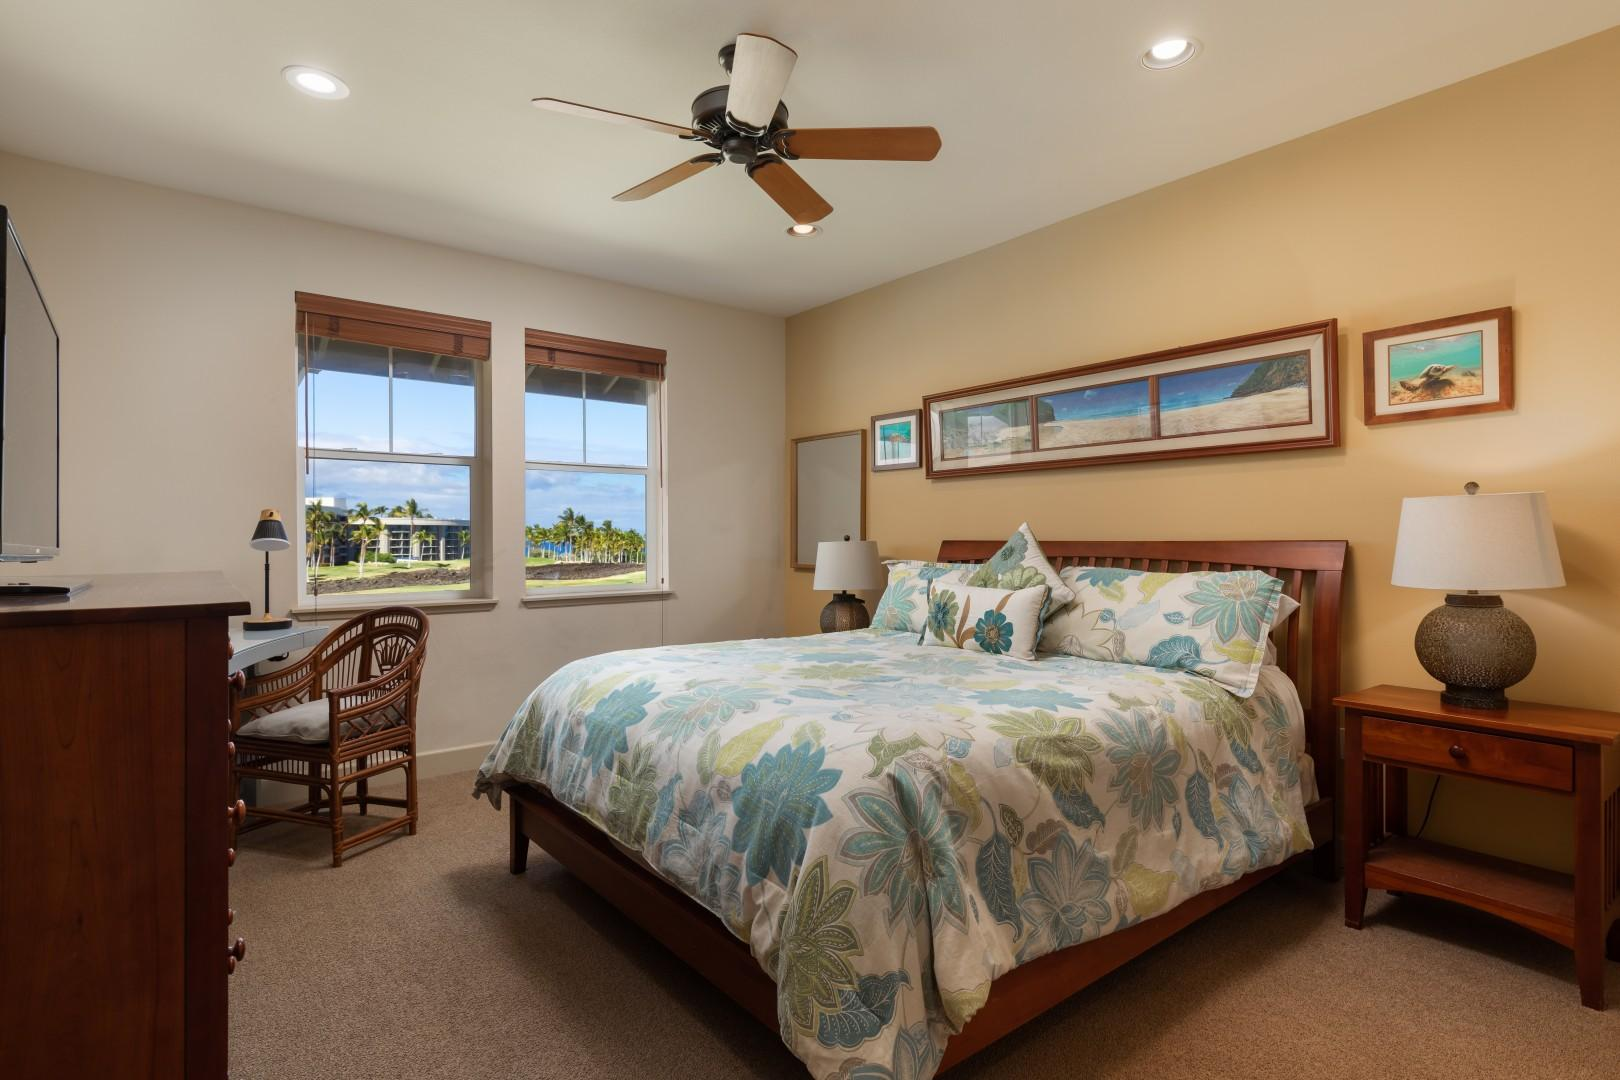 The King Master Suite is very spacious and has everything you desire.